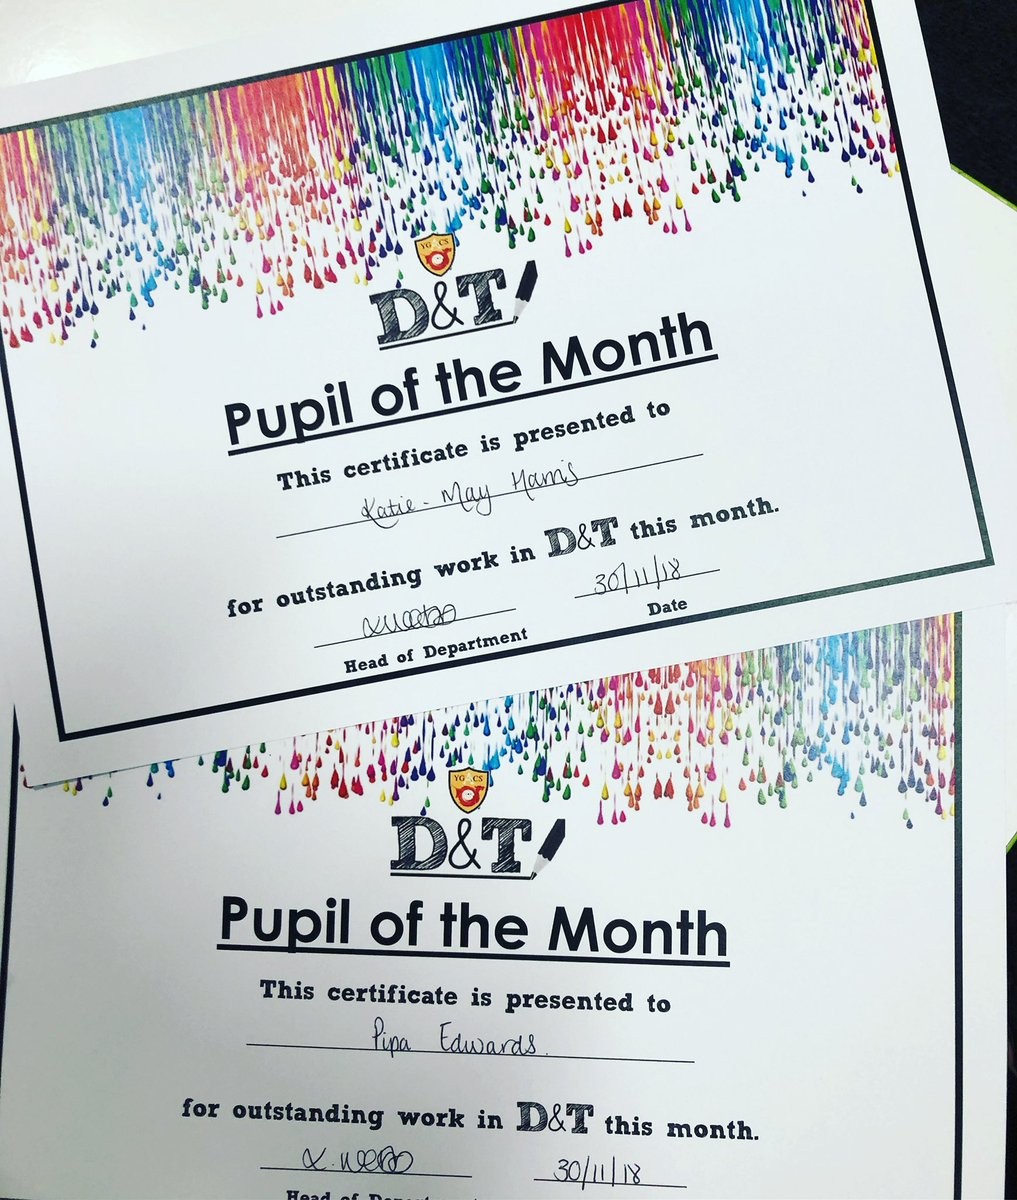 Well done to our pupils of the month…Pipa Edwards for KS3 and Katie-May Harris for KS4. Hard work pays off! #strivebelieveachieve